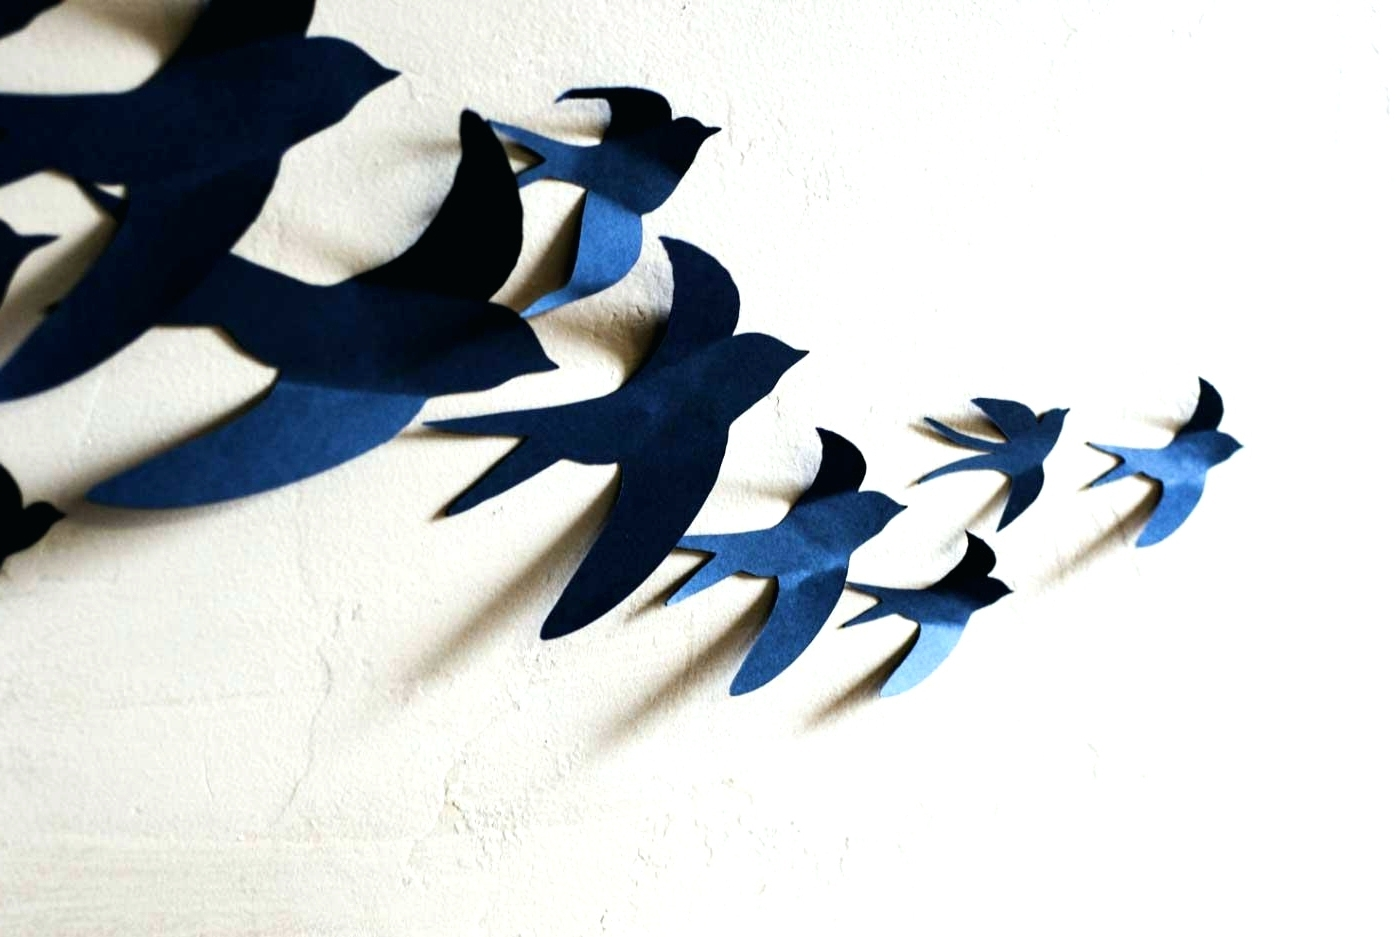 Flying Birds Metal Wall Art Inside Trendy Wall Arts: Birds On A Wire Wall Art (View 6 of 15)